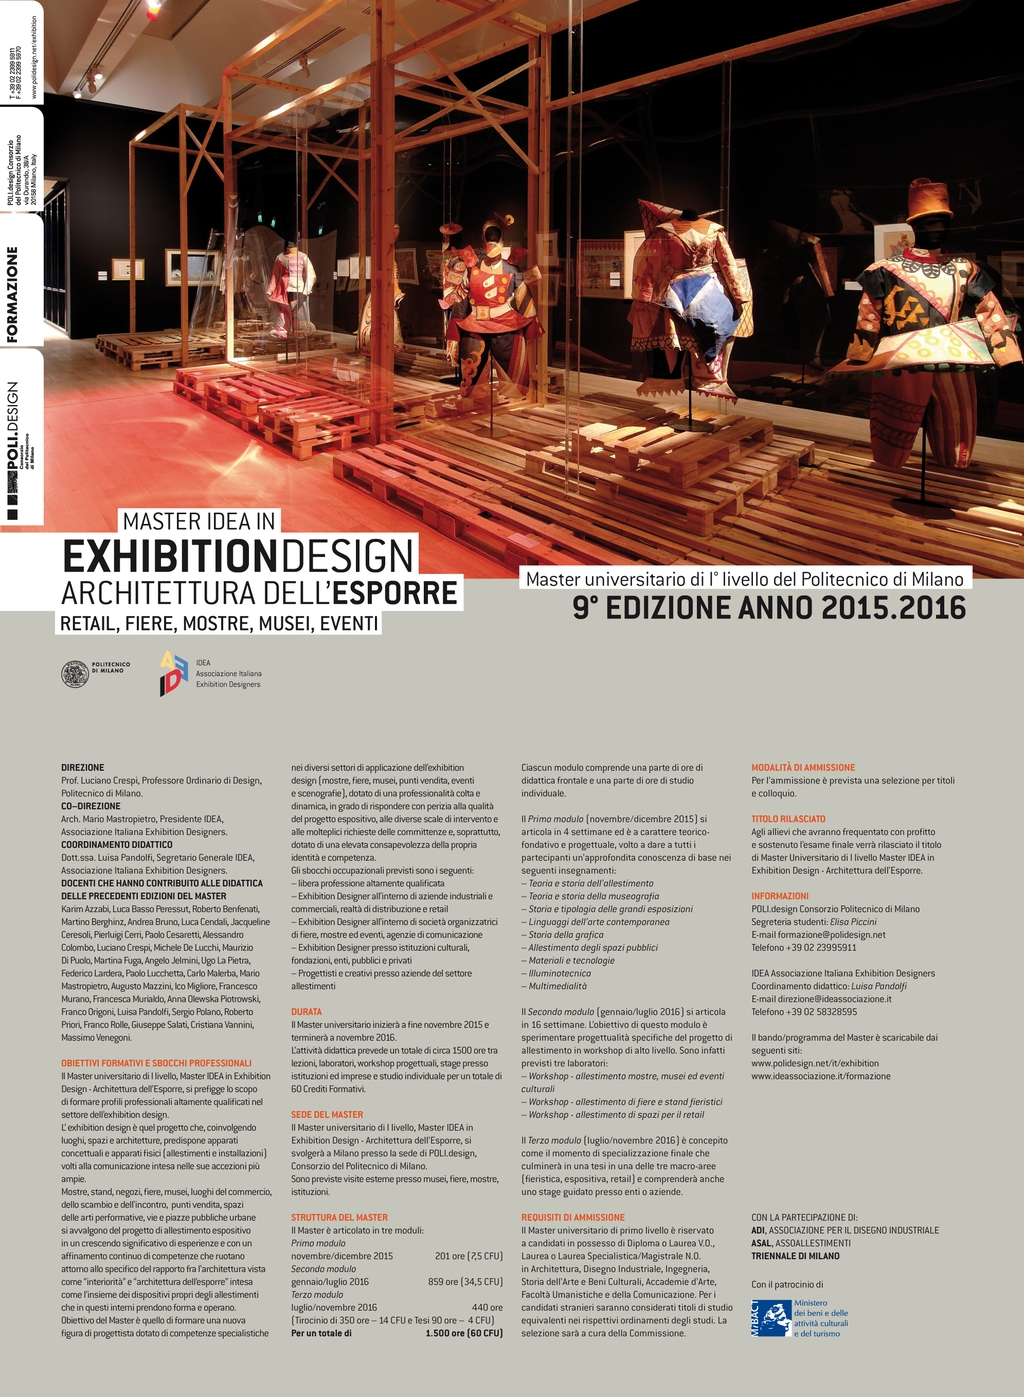 MASTER IDEA IN EXHIBITION DESIGN 15/16